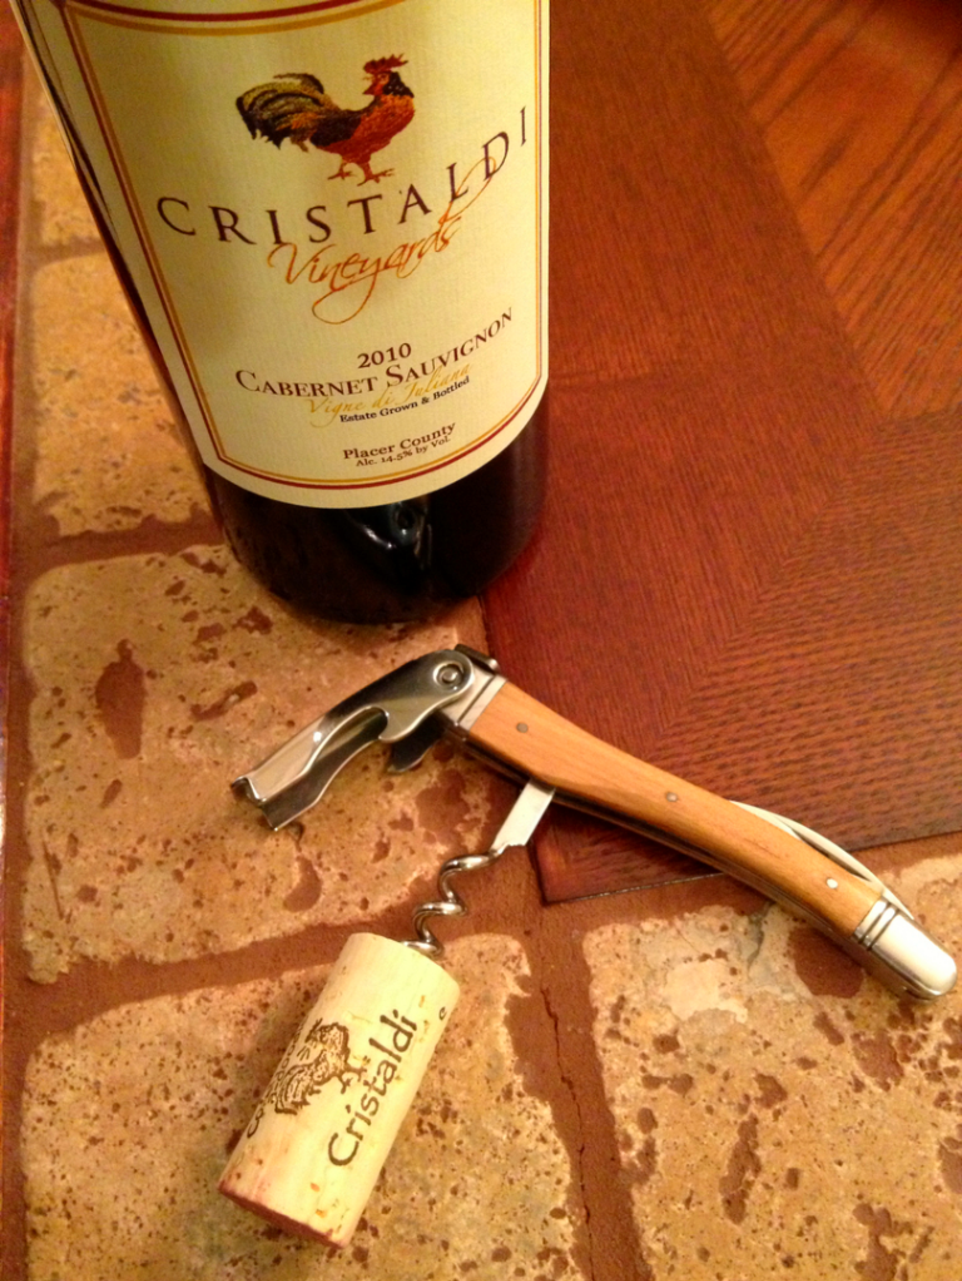 Photo of a bottle of Wine with corkscrew set on table